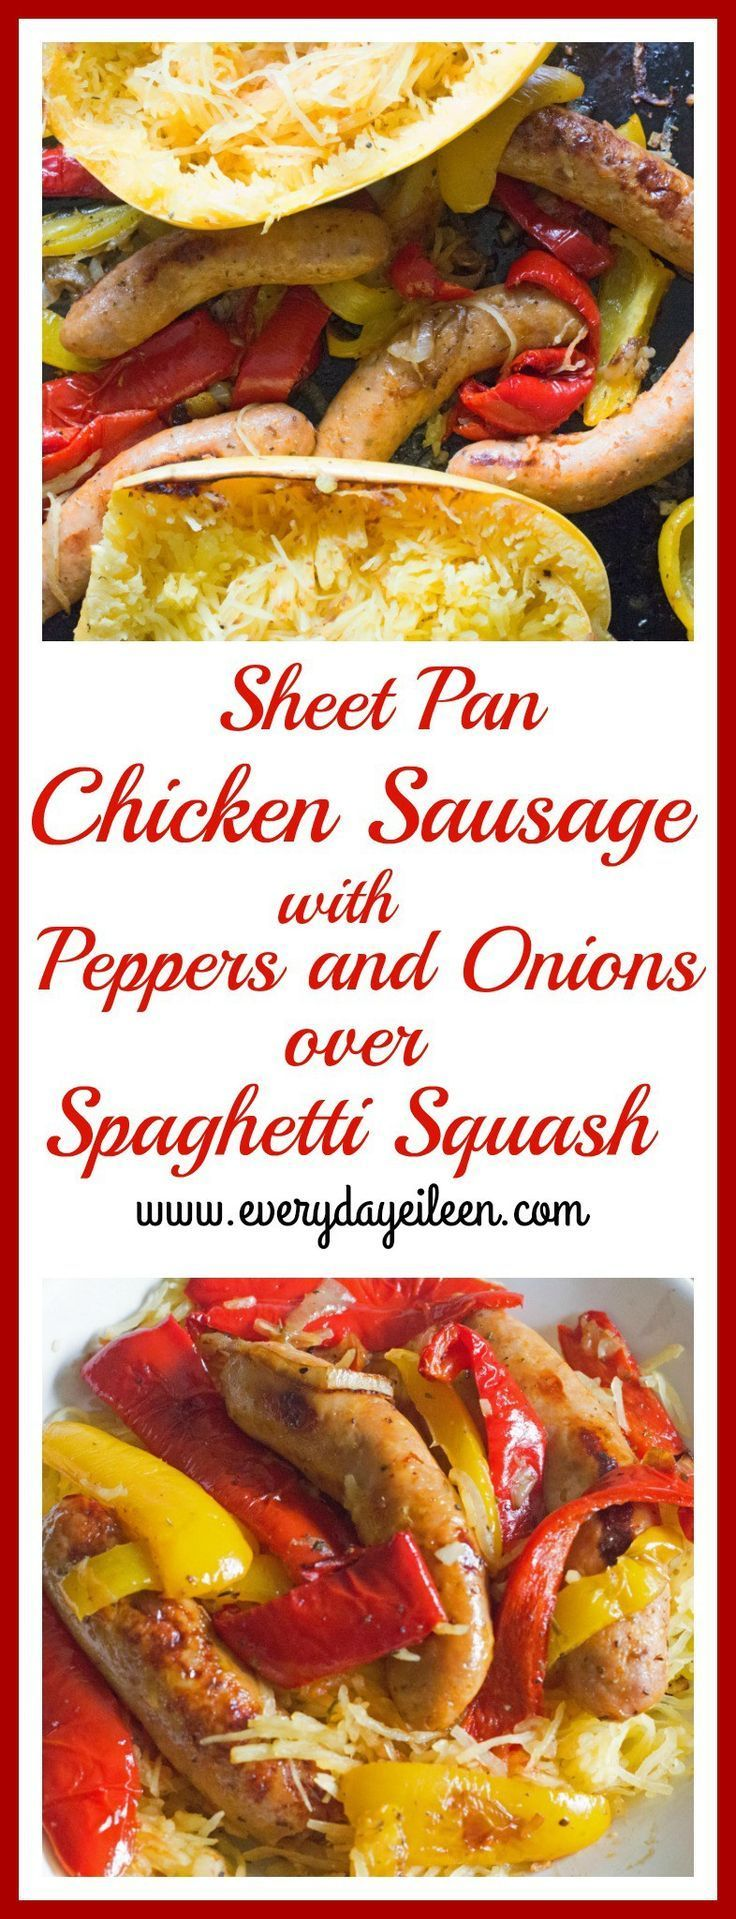 sheet pan chicken sausage w/peppers/onions/over spaghetti squash a super easy Gluten-free, low-calorie, low-fat !